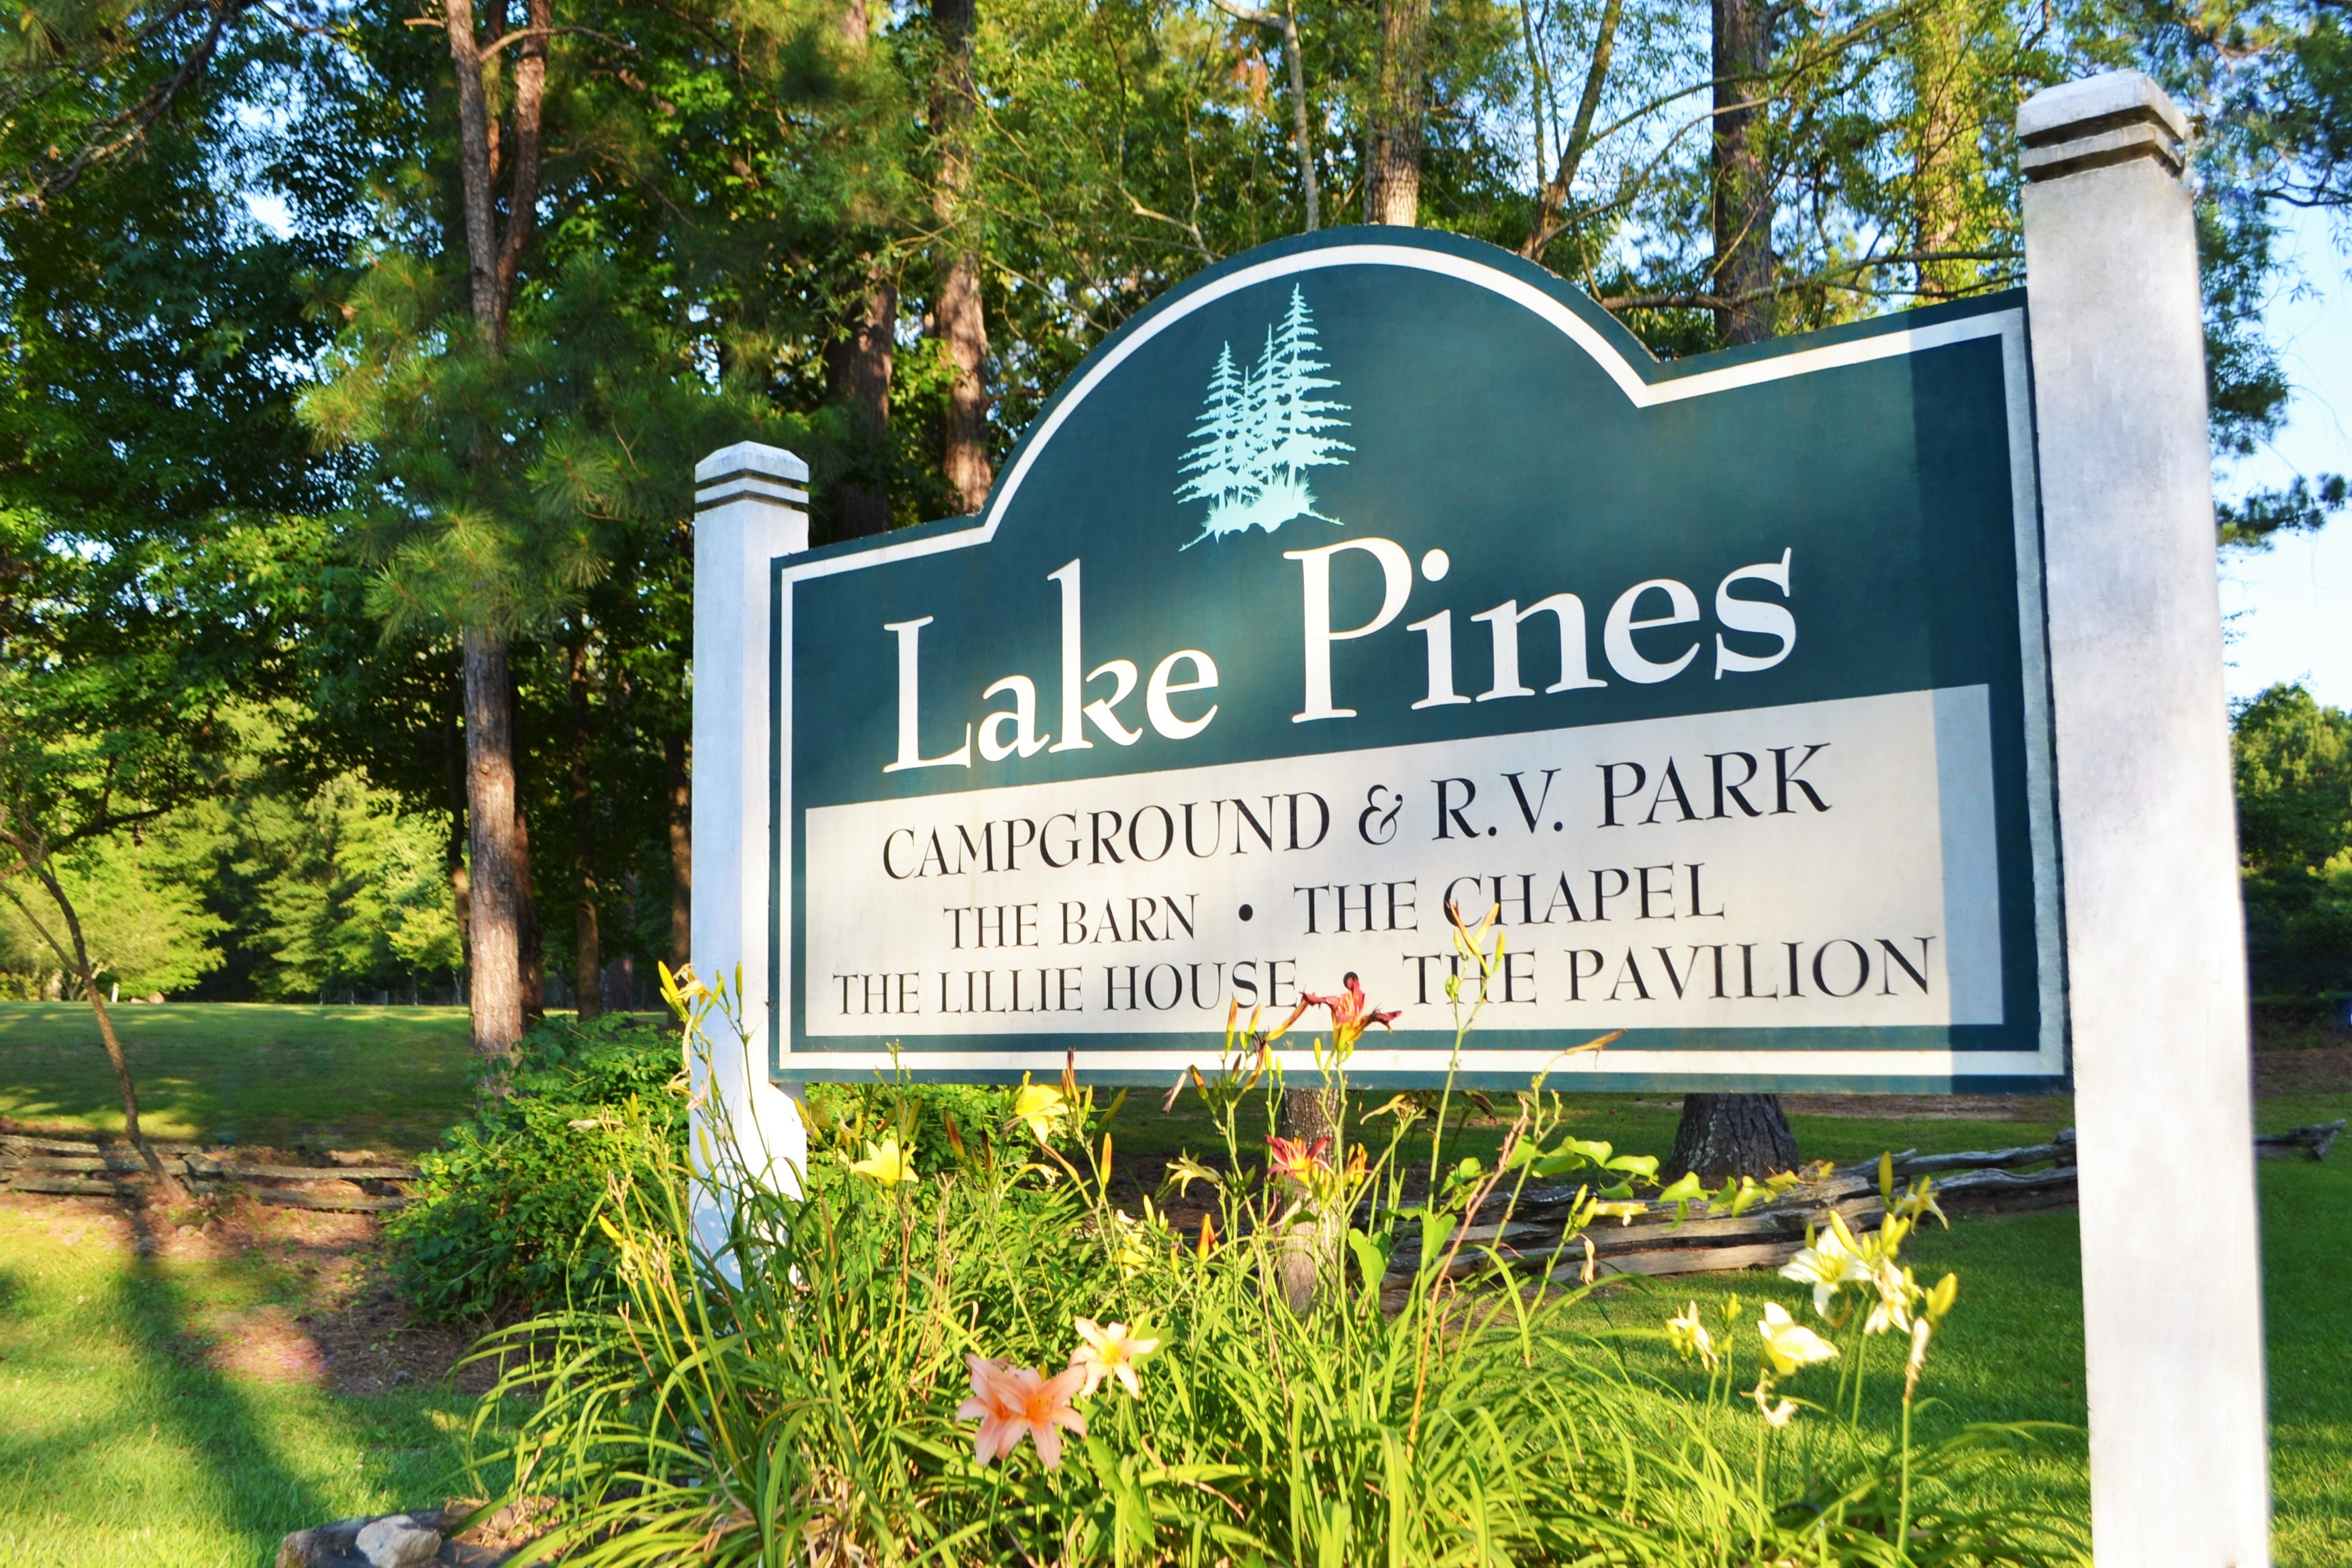 Lake Pines Campground and RV Park - sign